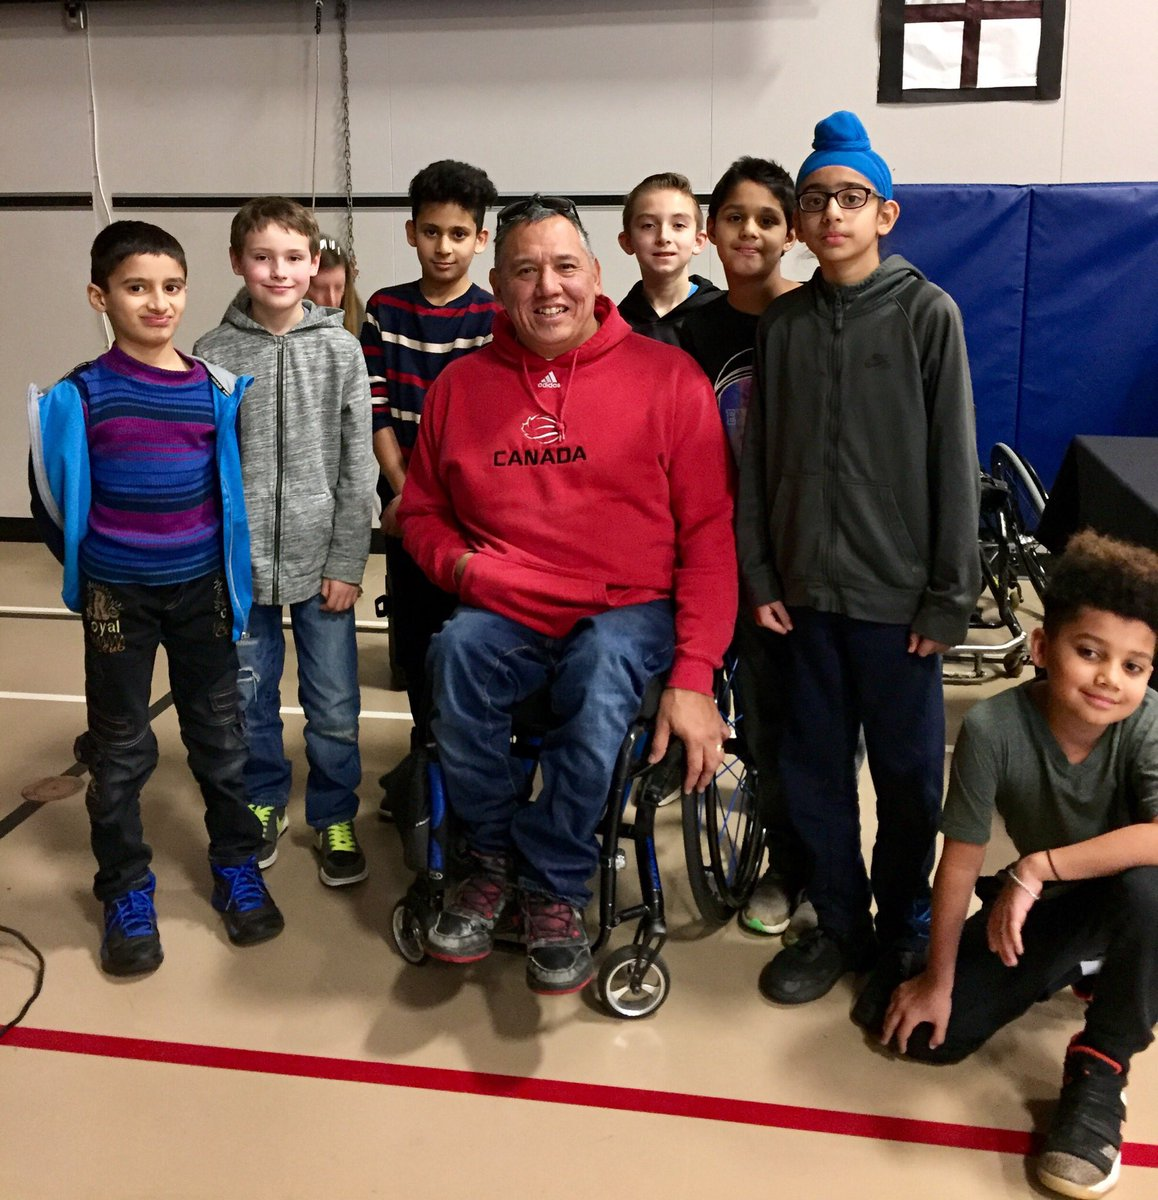 Lucky us!  A visit from Paralympic Basketball Gold medalist Richard Peter! Amazing to hear his story! @BCSportsHall #heroinyou  #sd36learn<br>http://pic.twitter.com/qxRFUKmDlQ